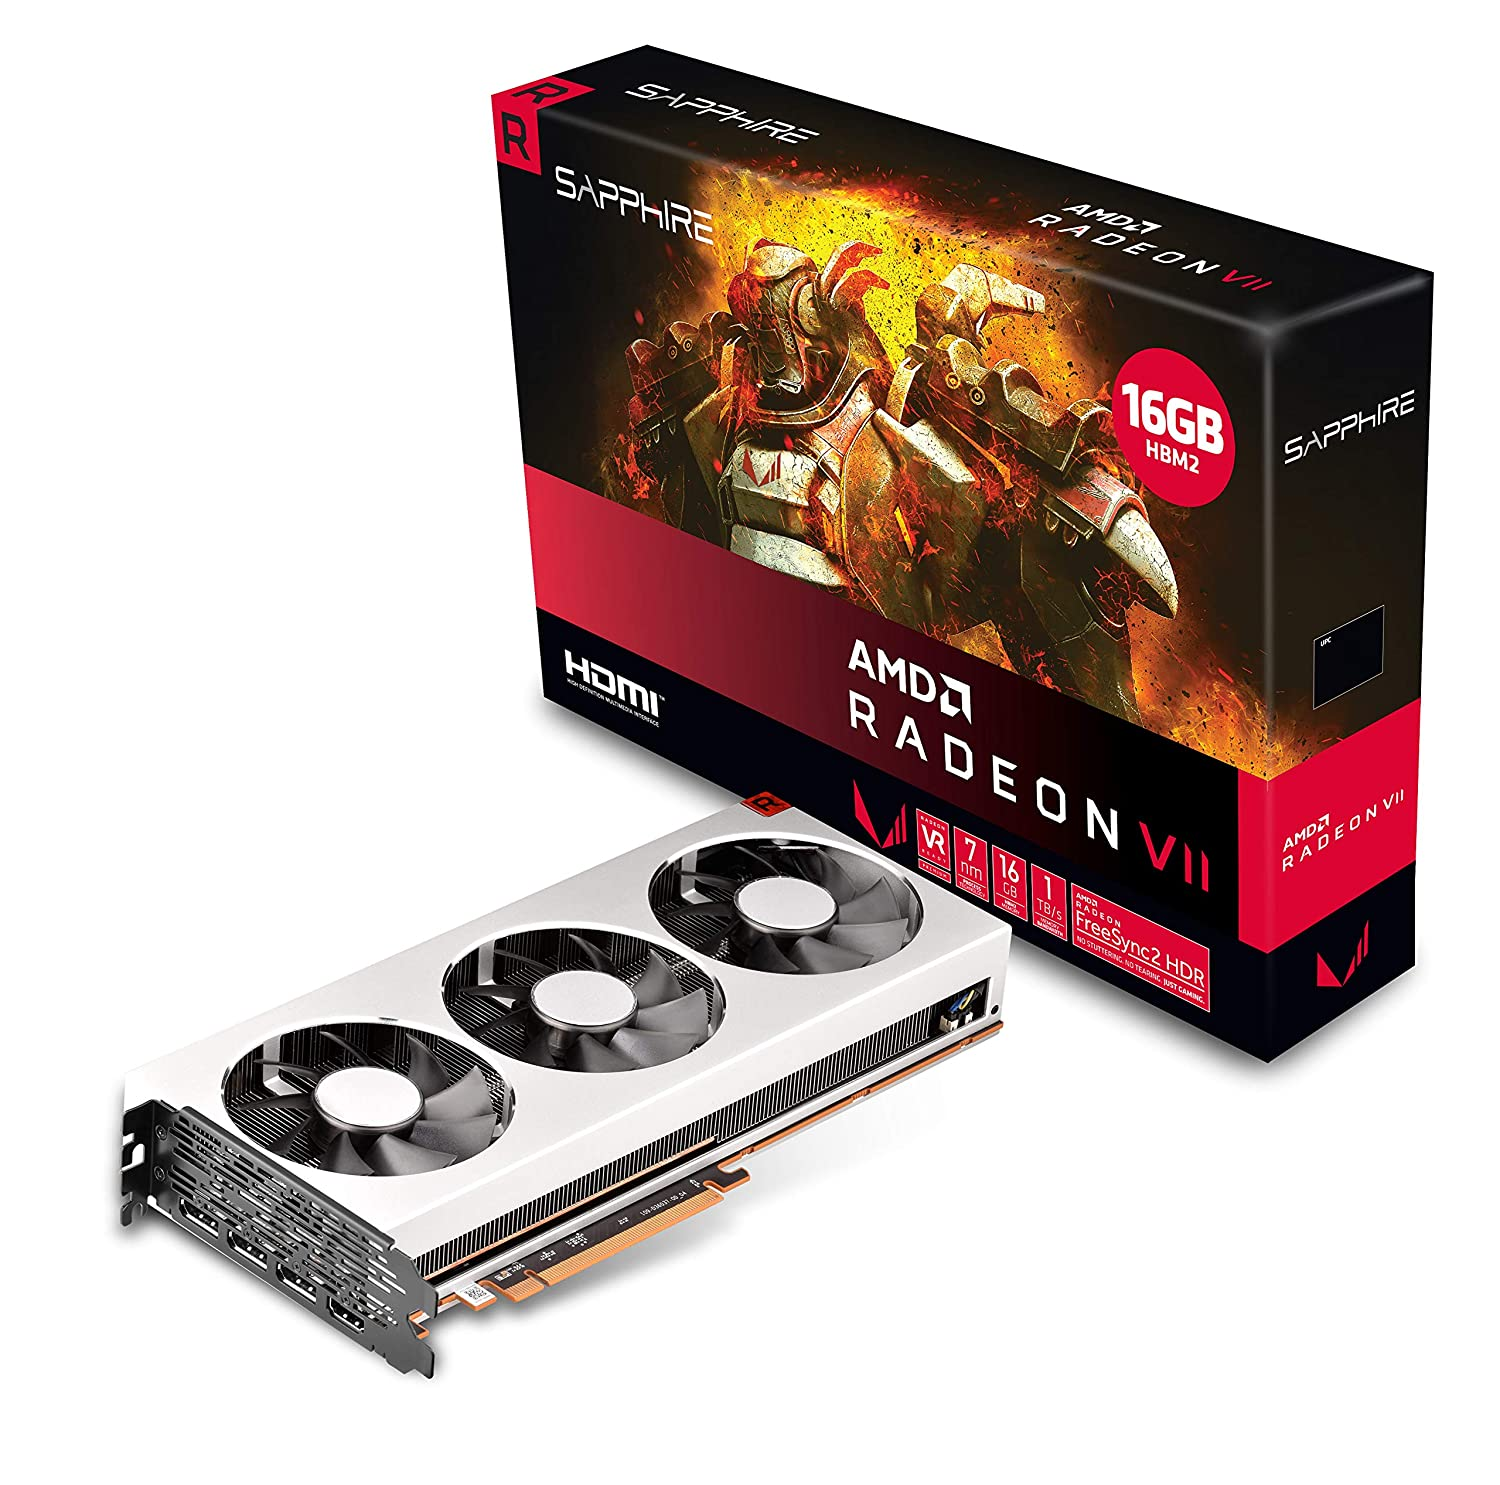 PCI-E Graphics Card UEFI Sapphire Radeon VII 16GB HBM2 HDMI// Triple DP